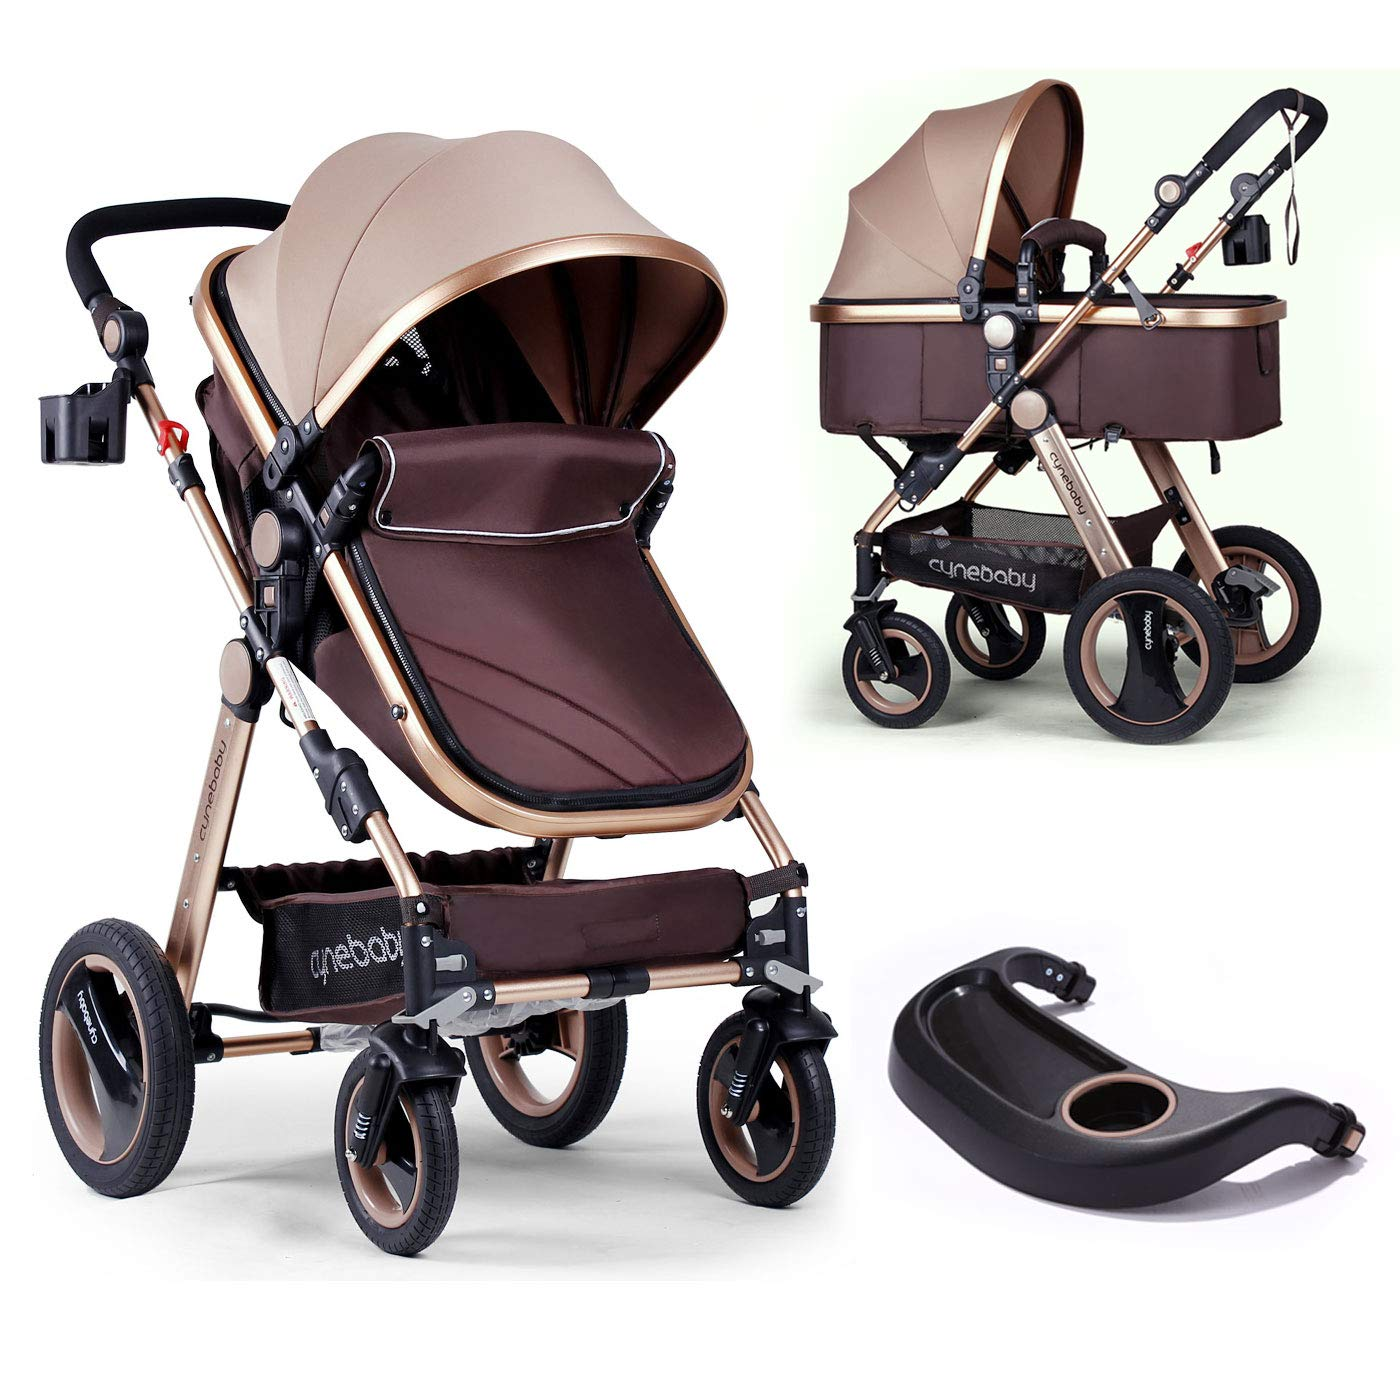 Infant Baby Stroller For Newborn And Toddler Cynebaby Convertible Bassinet Stroller Compact Single